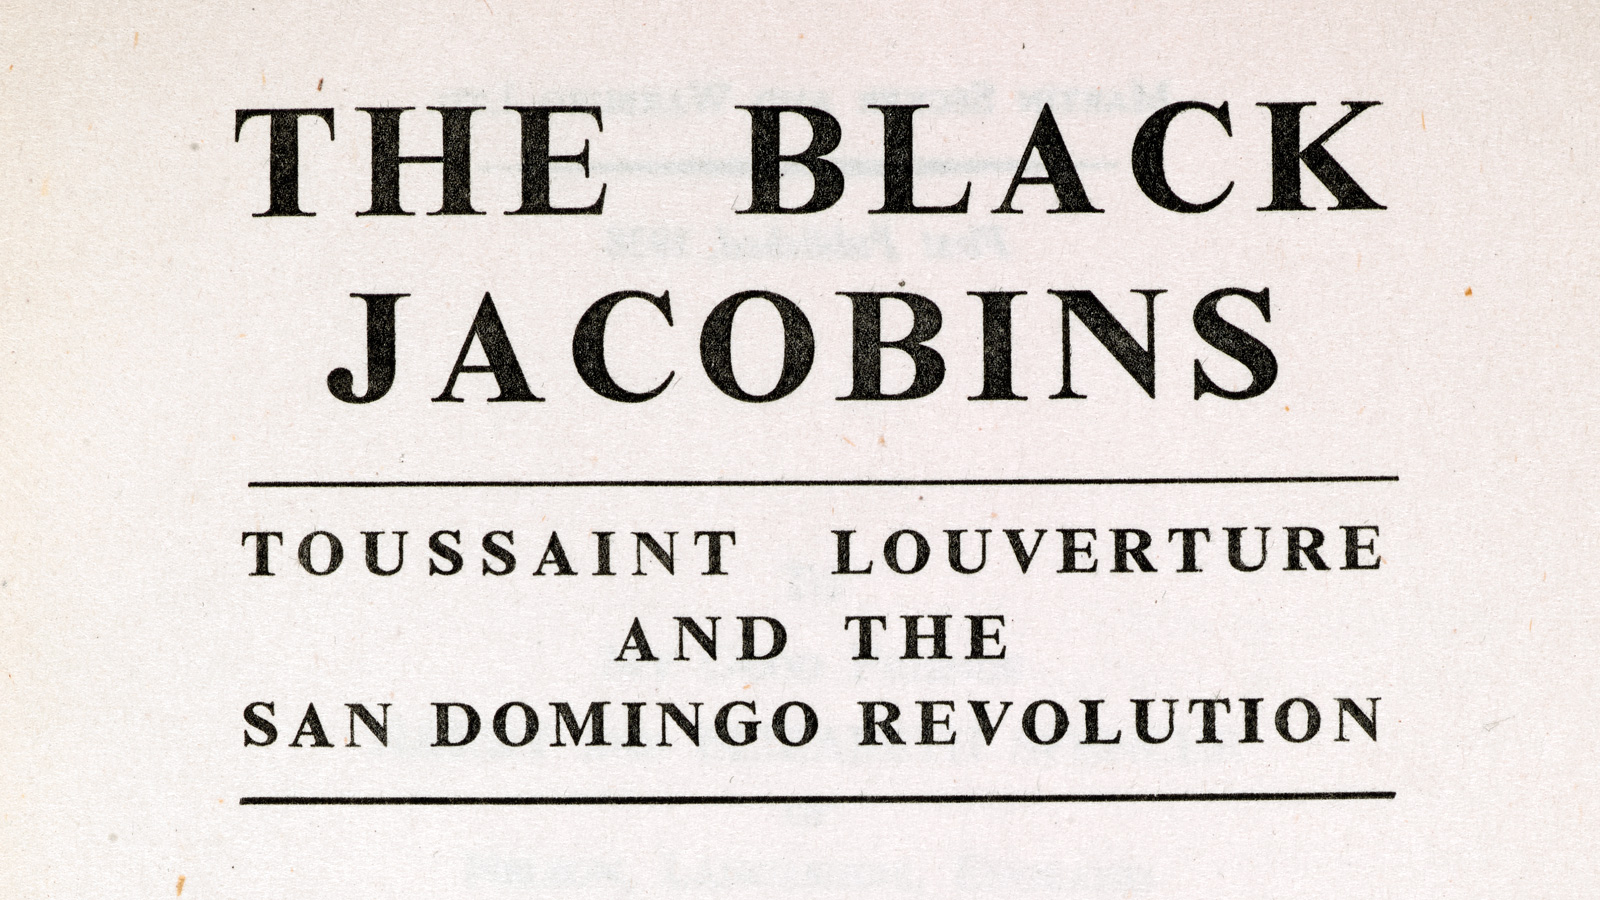 An introduction to C L R James's 'The Black Jacobins'